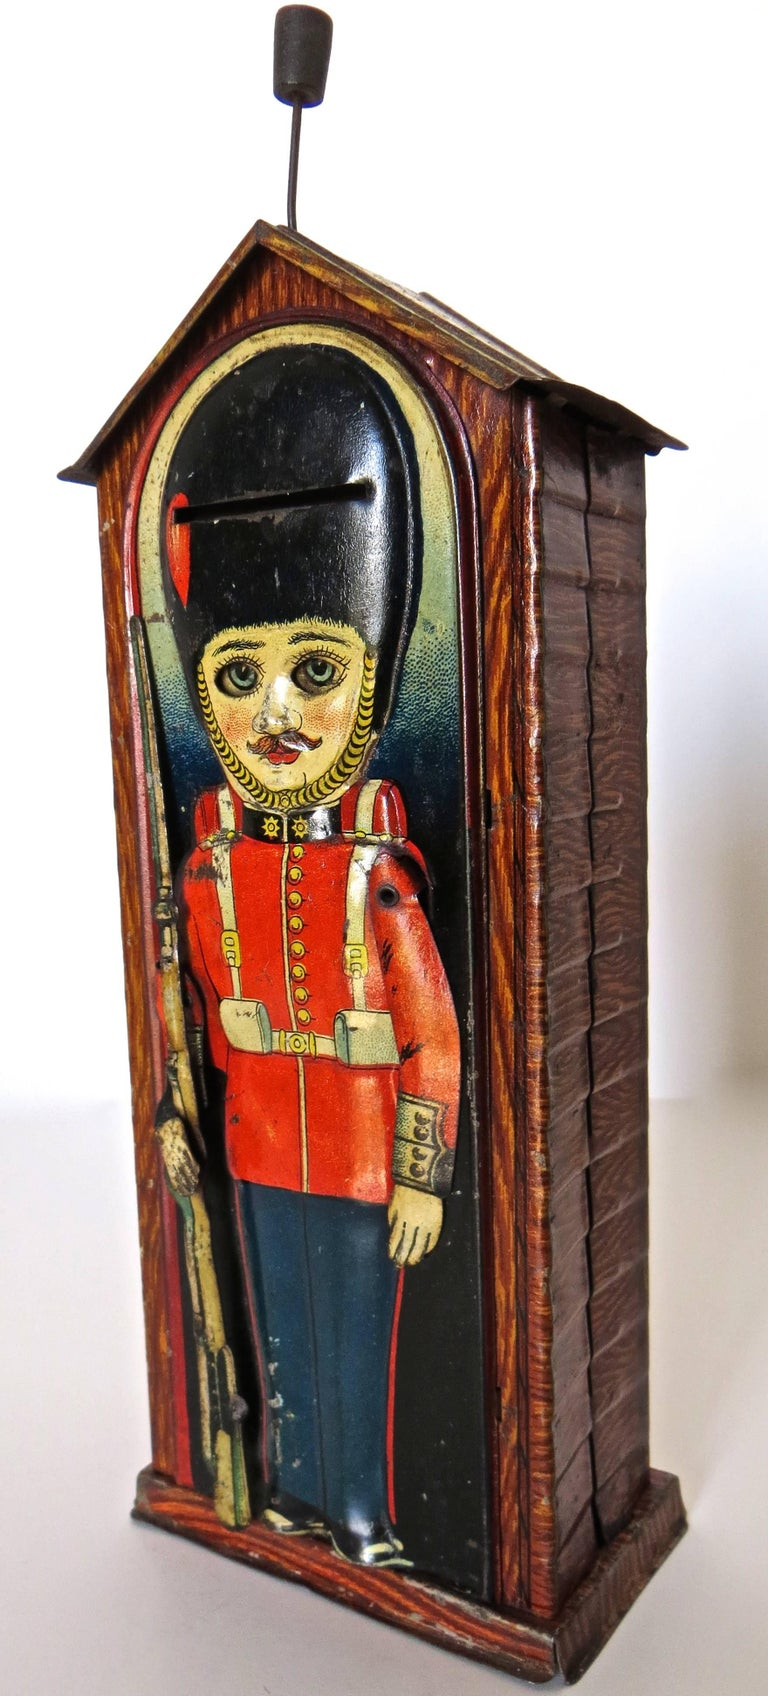 Mechanical Bank 'Sentry', circa 1925 In Good Condition For Sale In Incline Village, NV